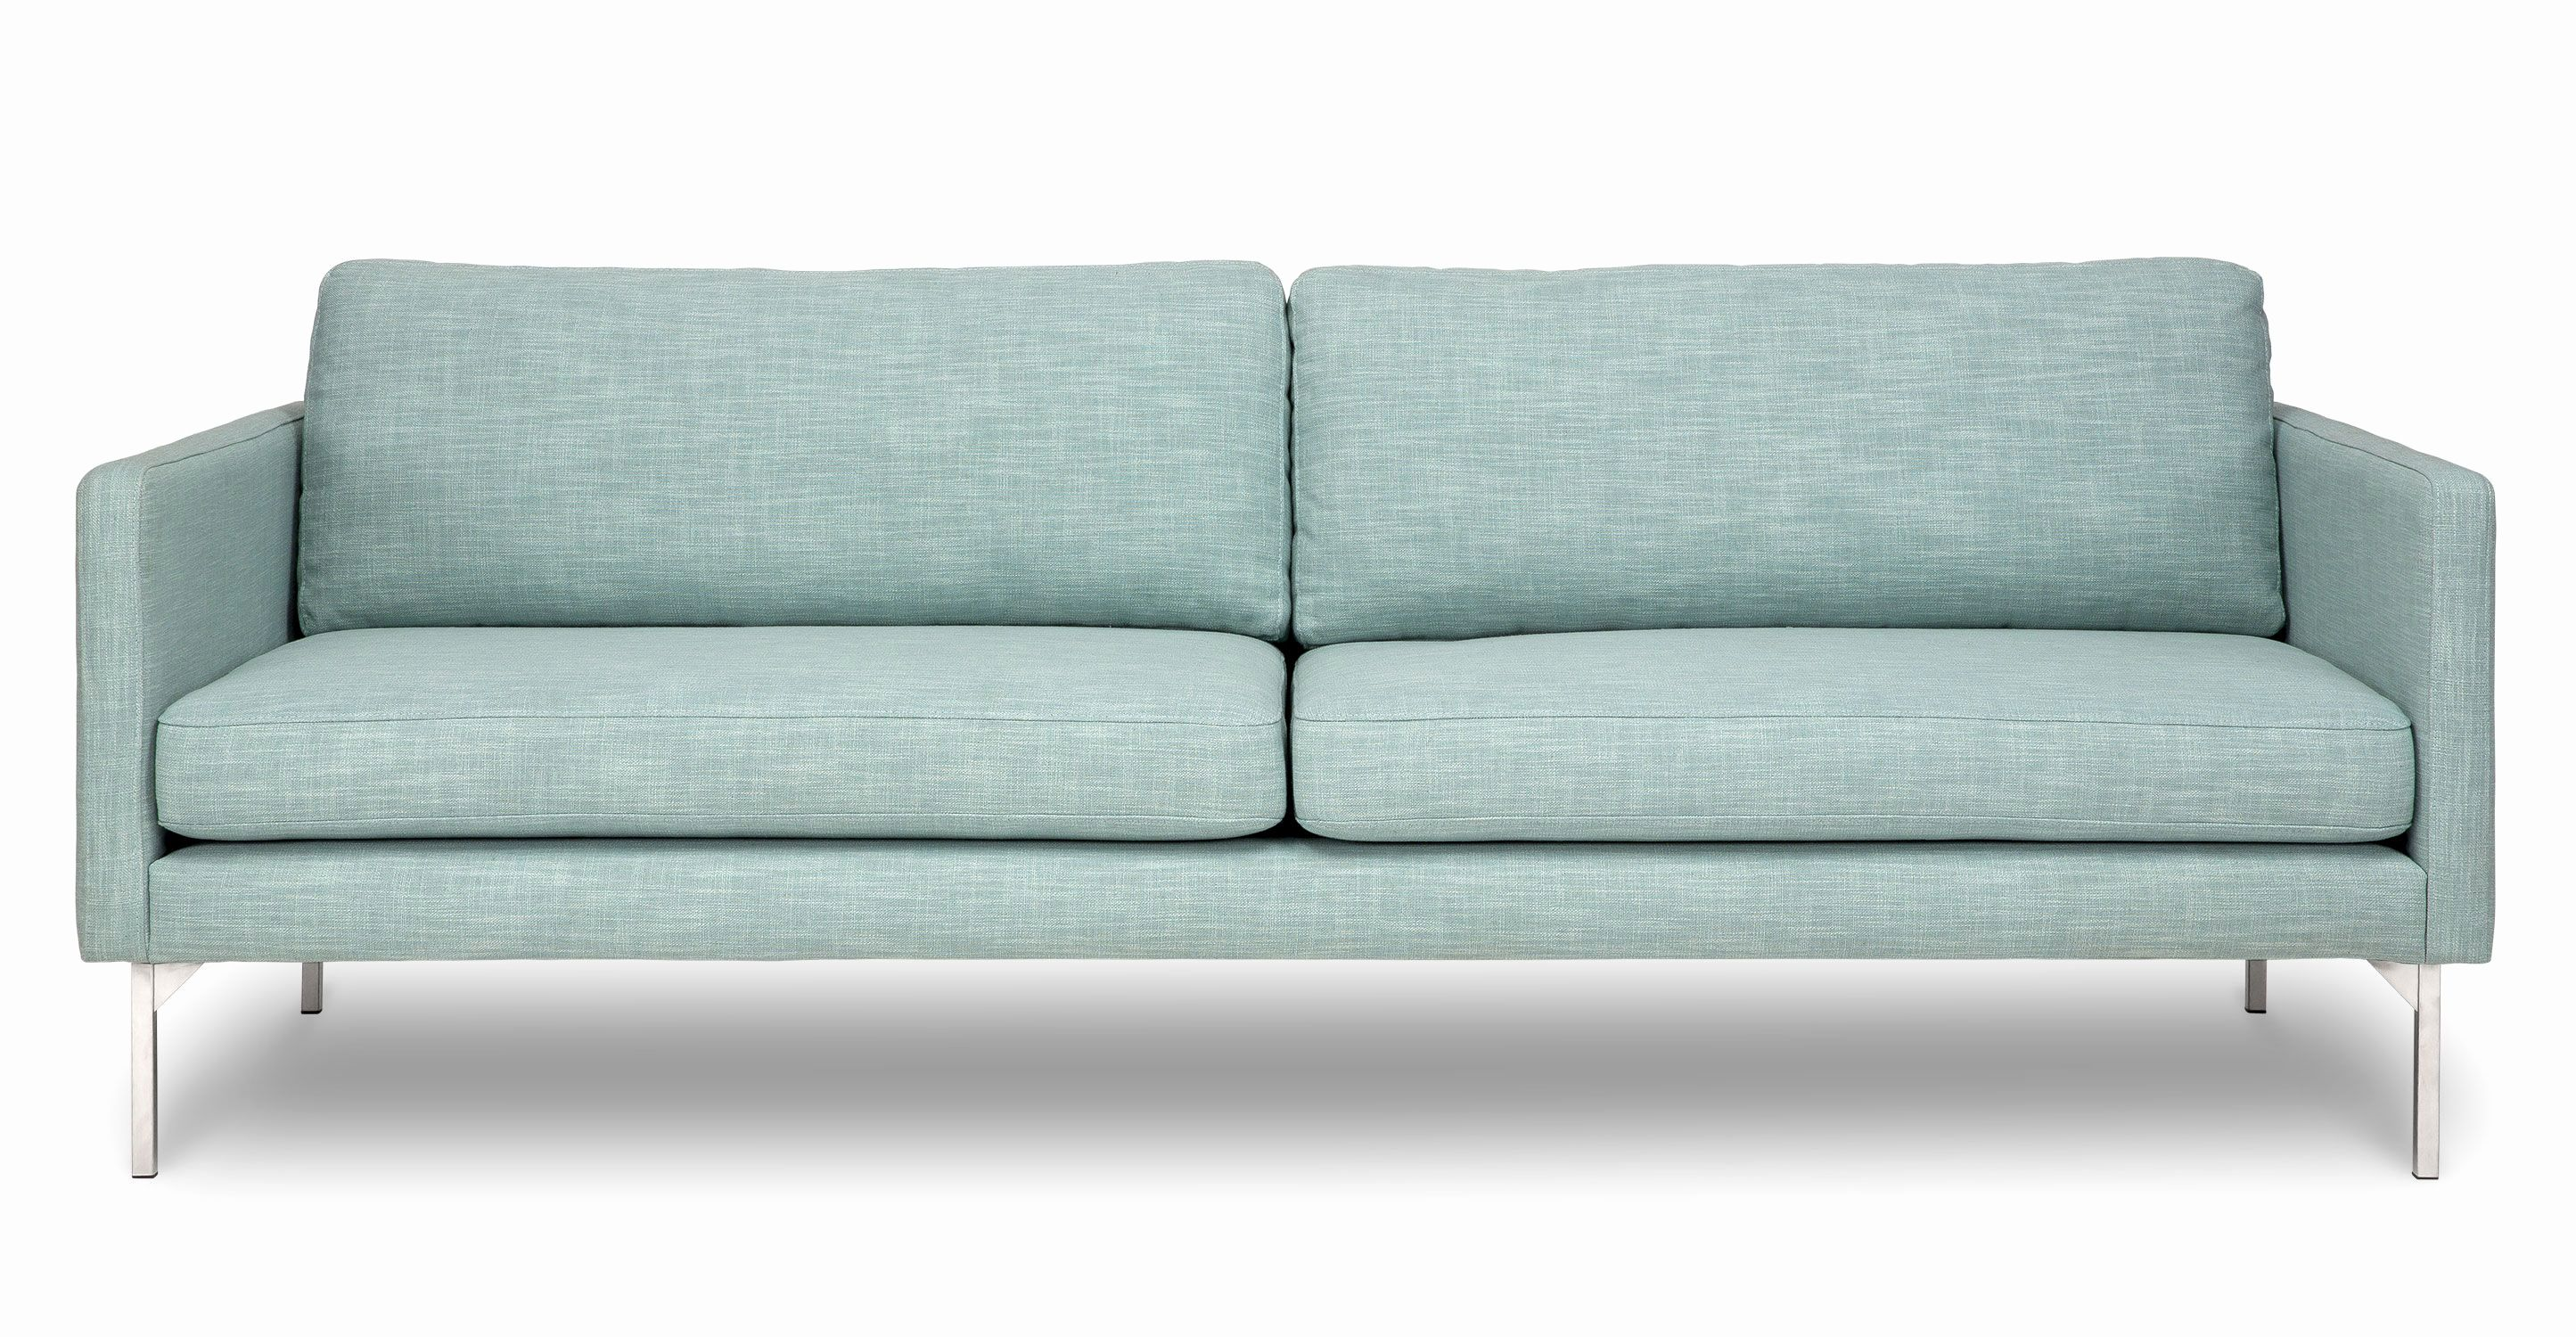 Fresh Apartment therapy sofa Bed Picture Apartment therapy